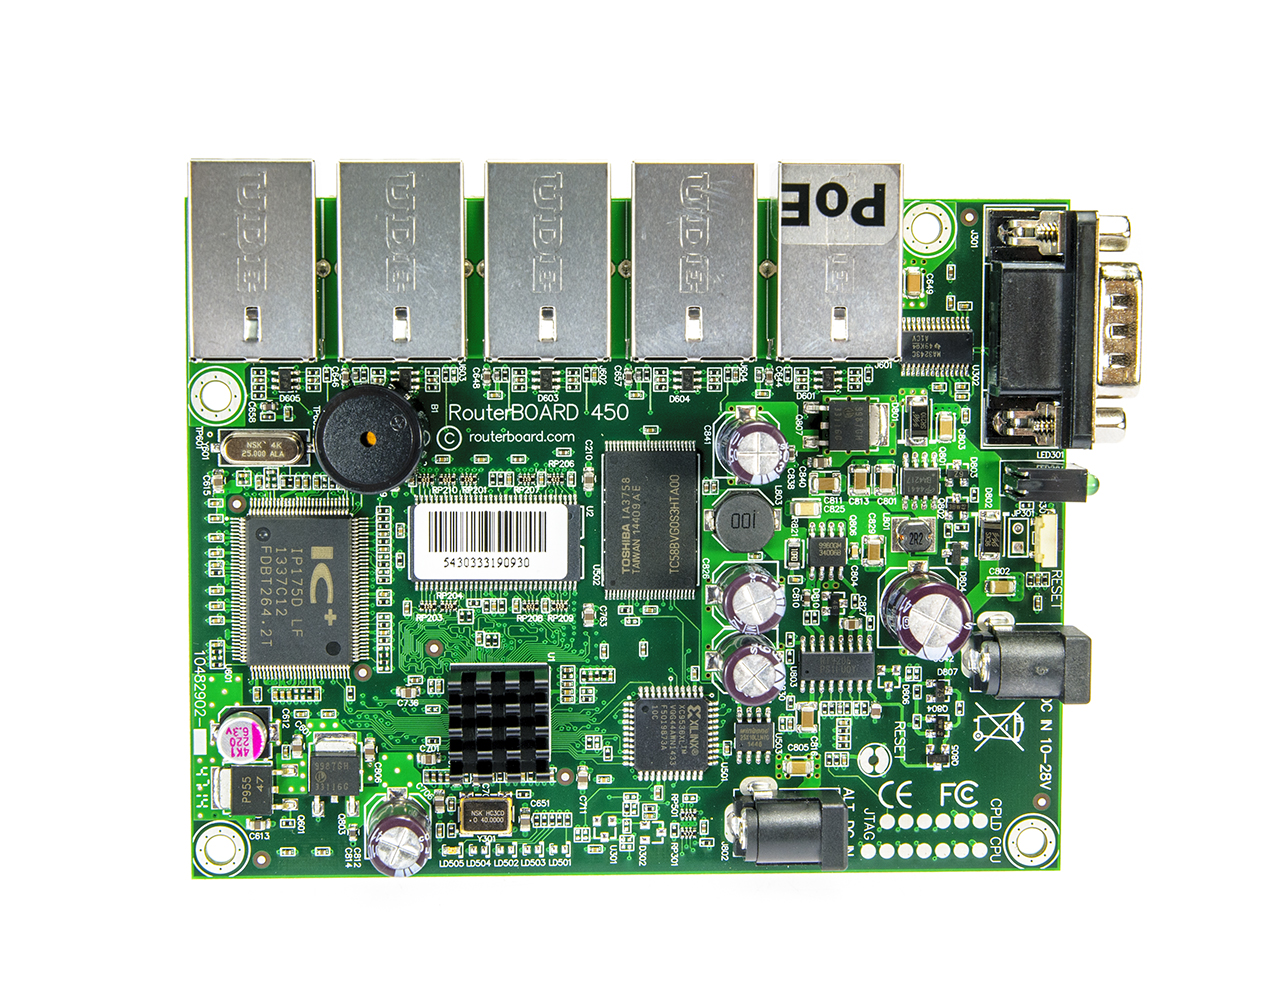 Mikrotik Routerboard Rb750gr3 Hex R3 Rb450 5xlan 0xminipci 32mb Sd Ram E 64mb Flash